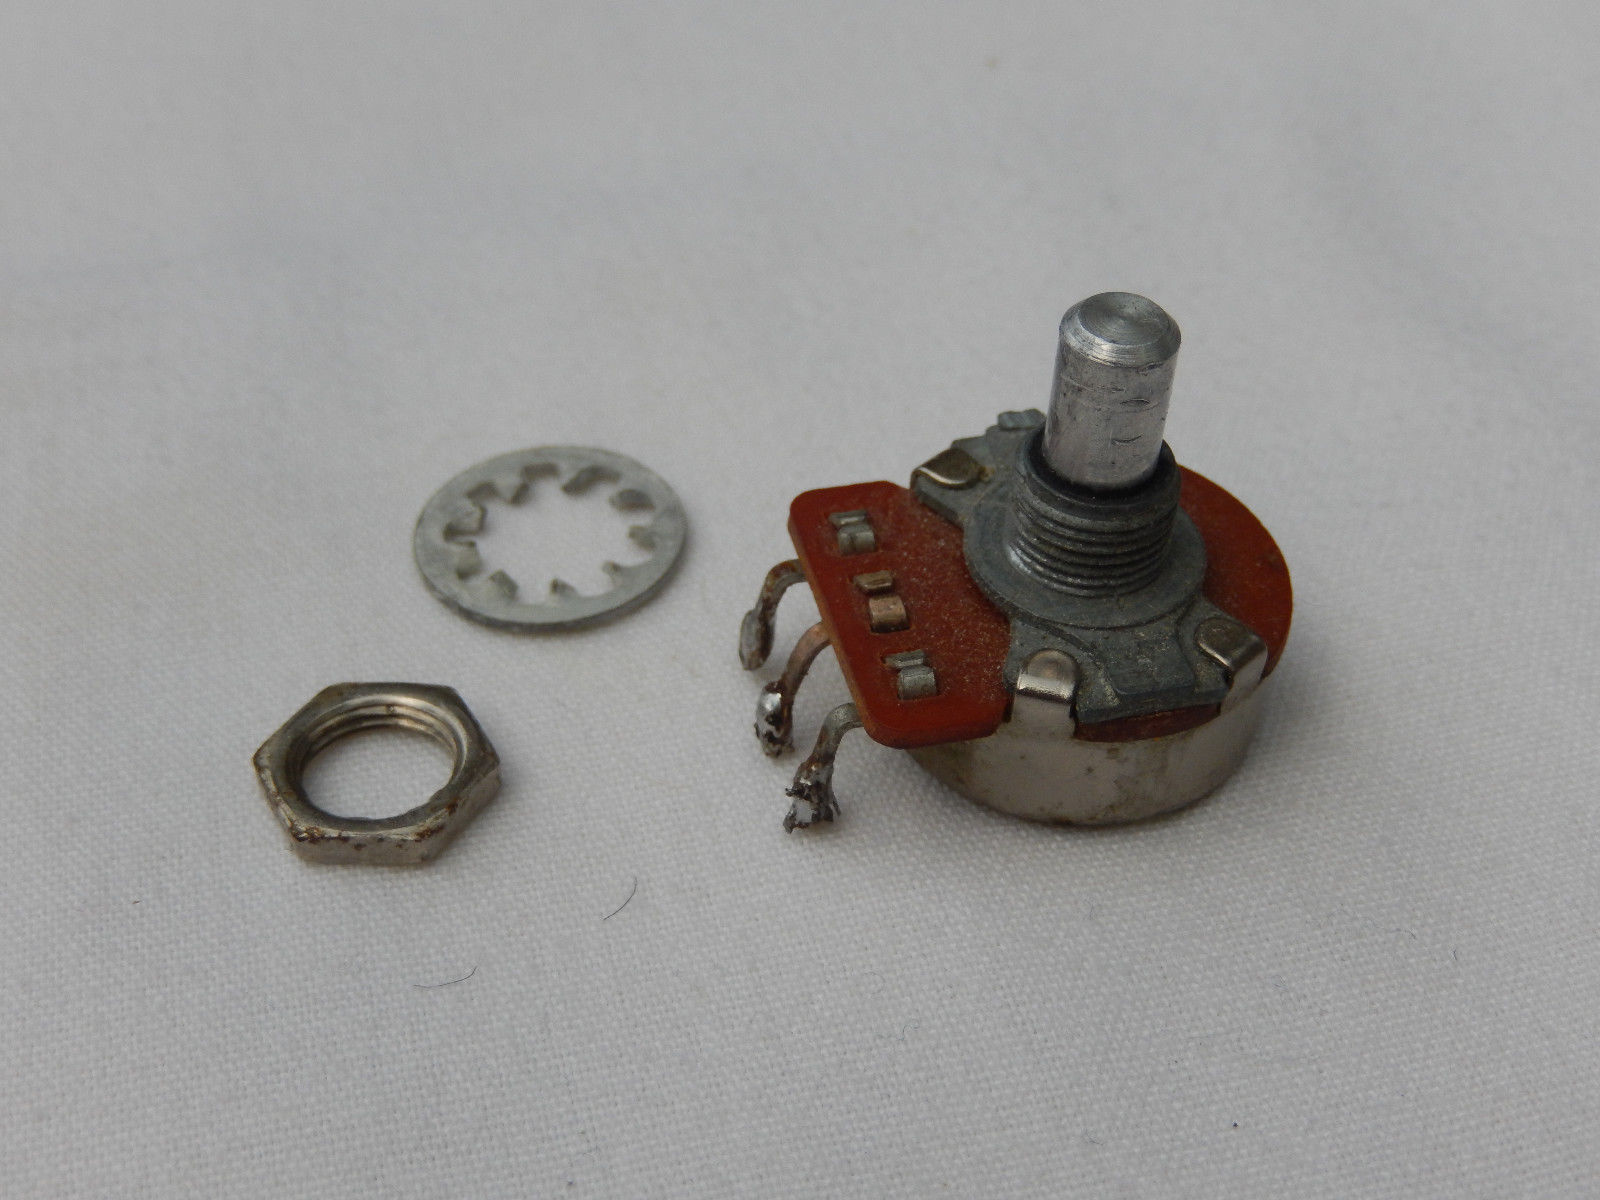 1977 Fender Telecaster – CTS 250k Potentiometer – pot – w/ Washer and Nut!